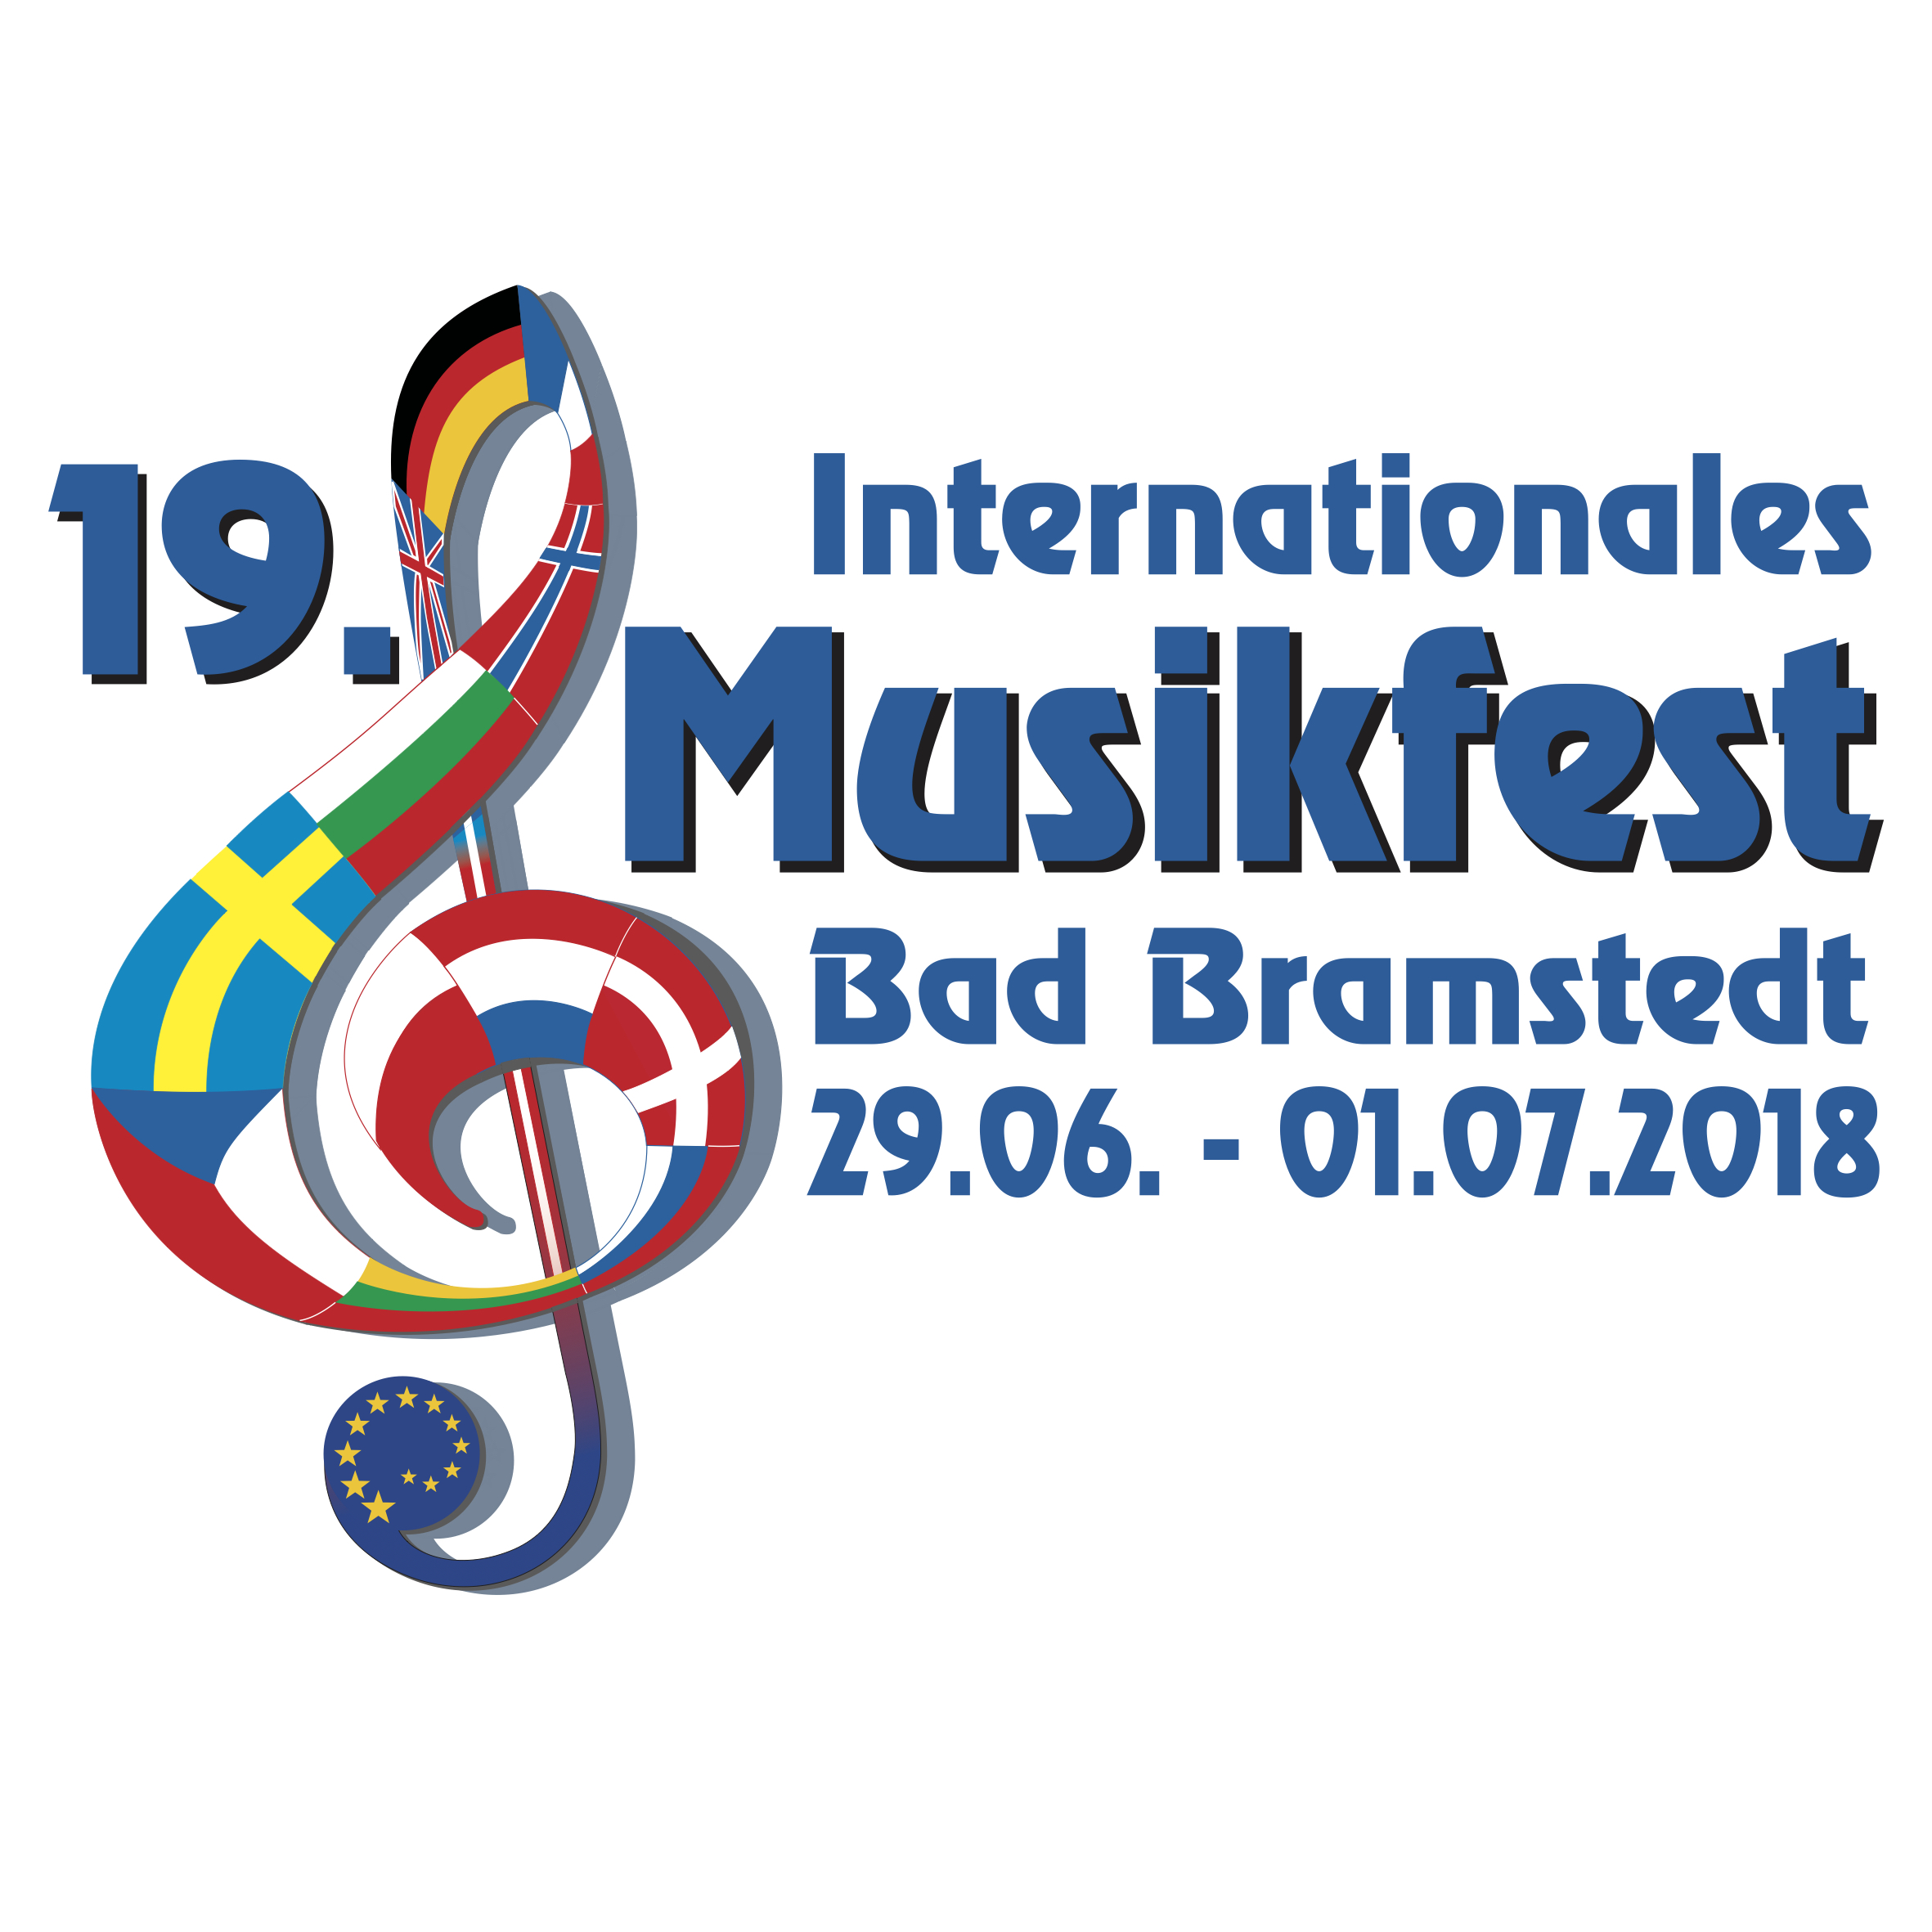 19. Internationales Musikfest 2018